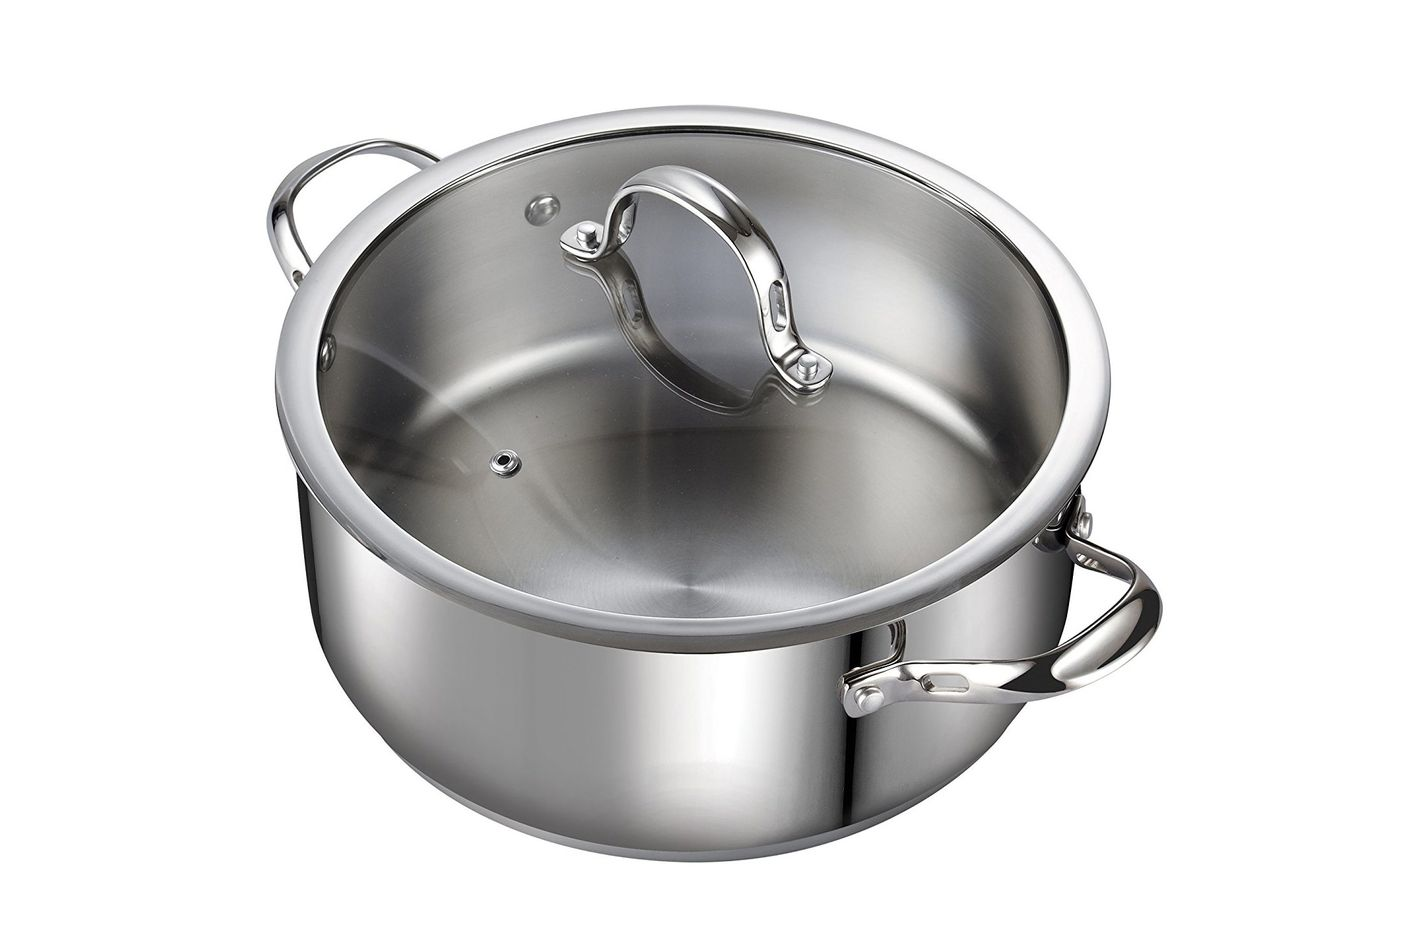 Best Saucepans, Pots, Dutch Ovens on Amazon